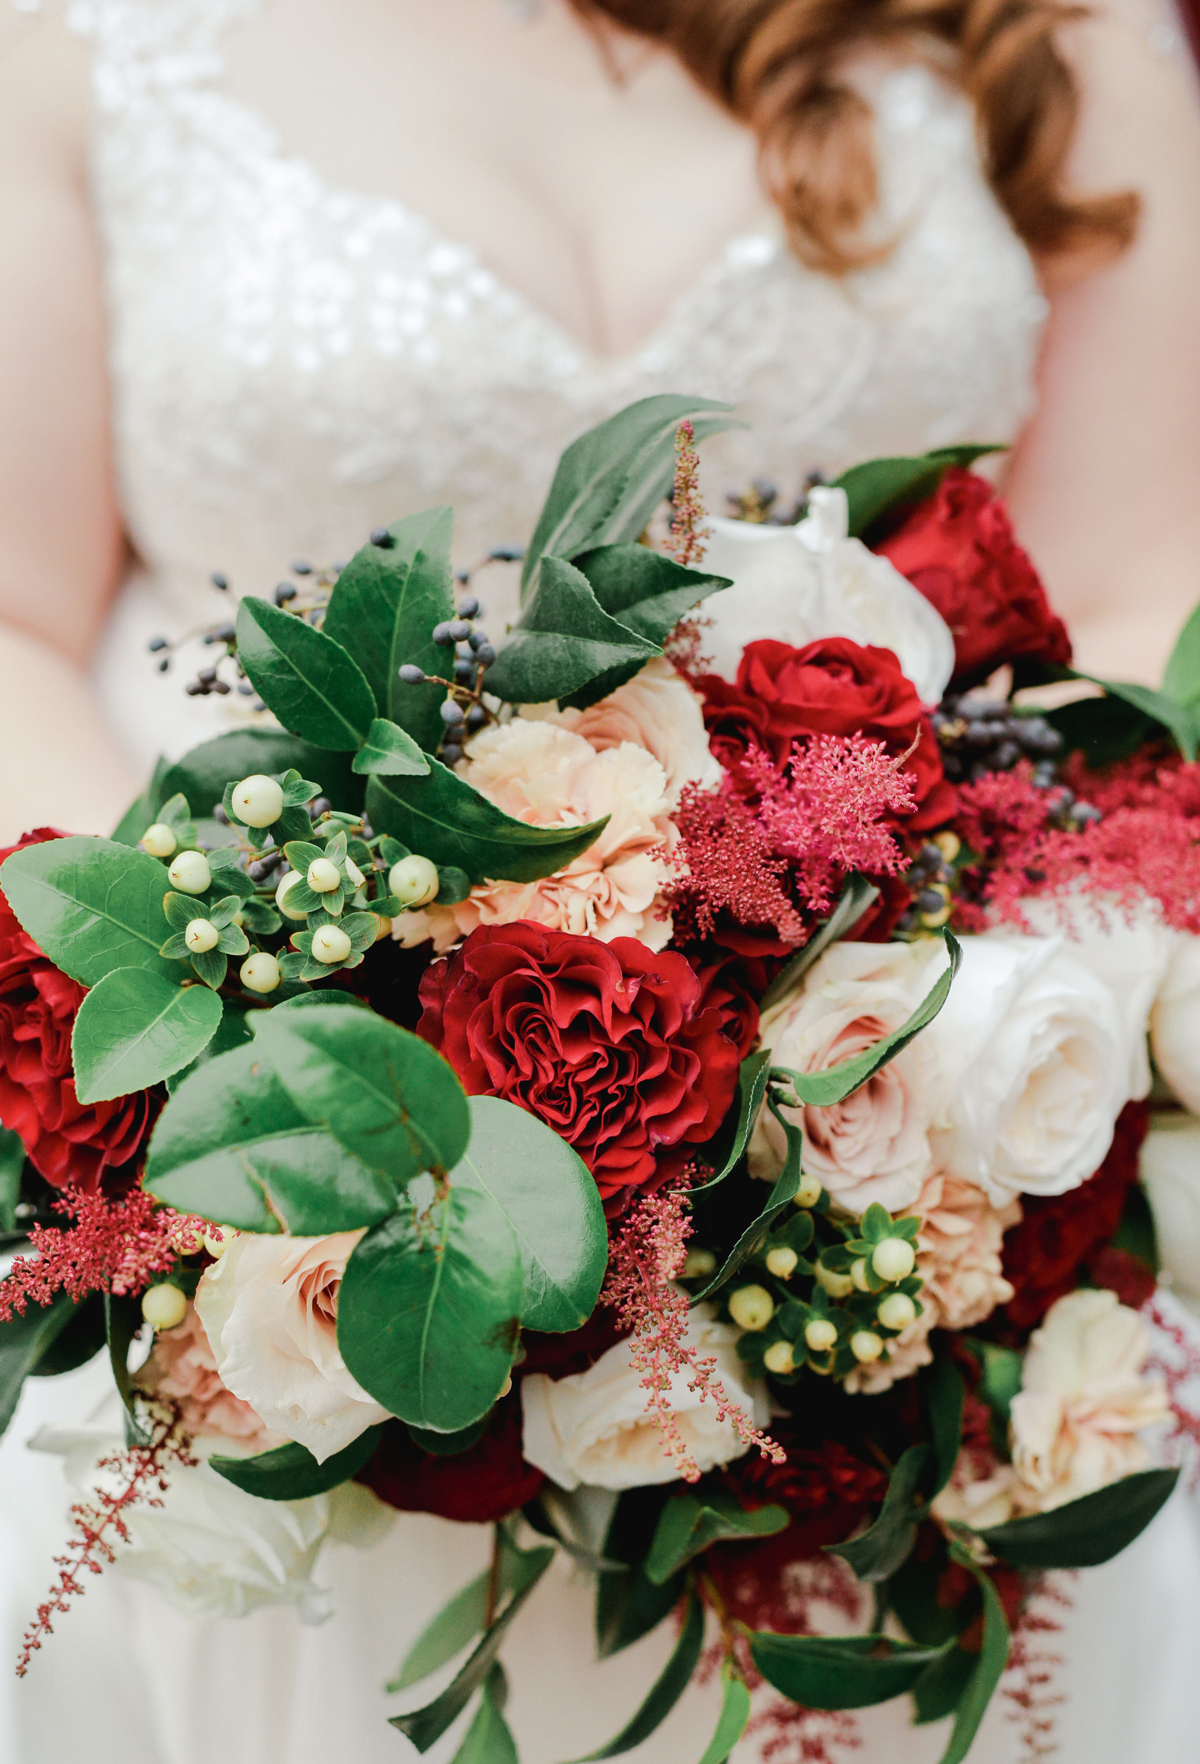 A Lush Bridal Bouquet